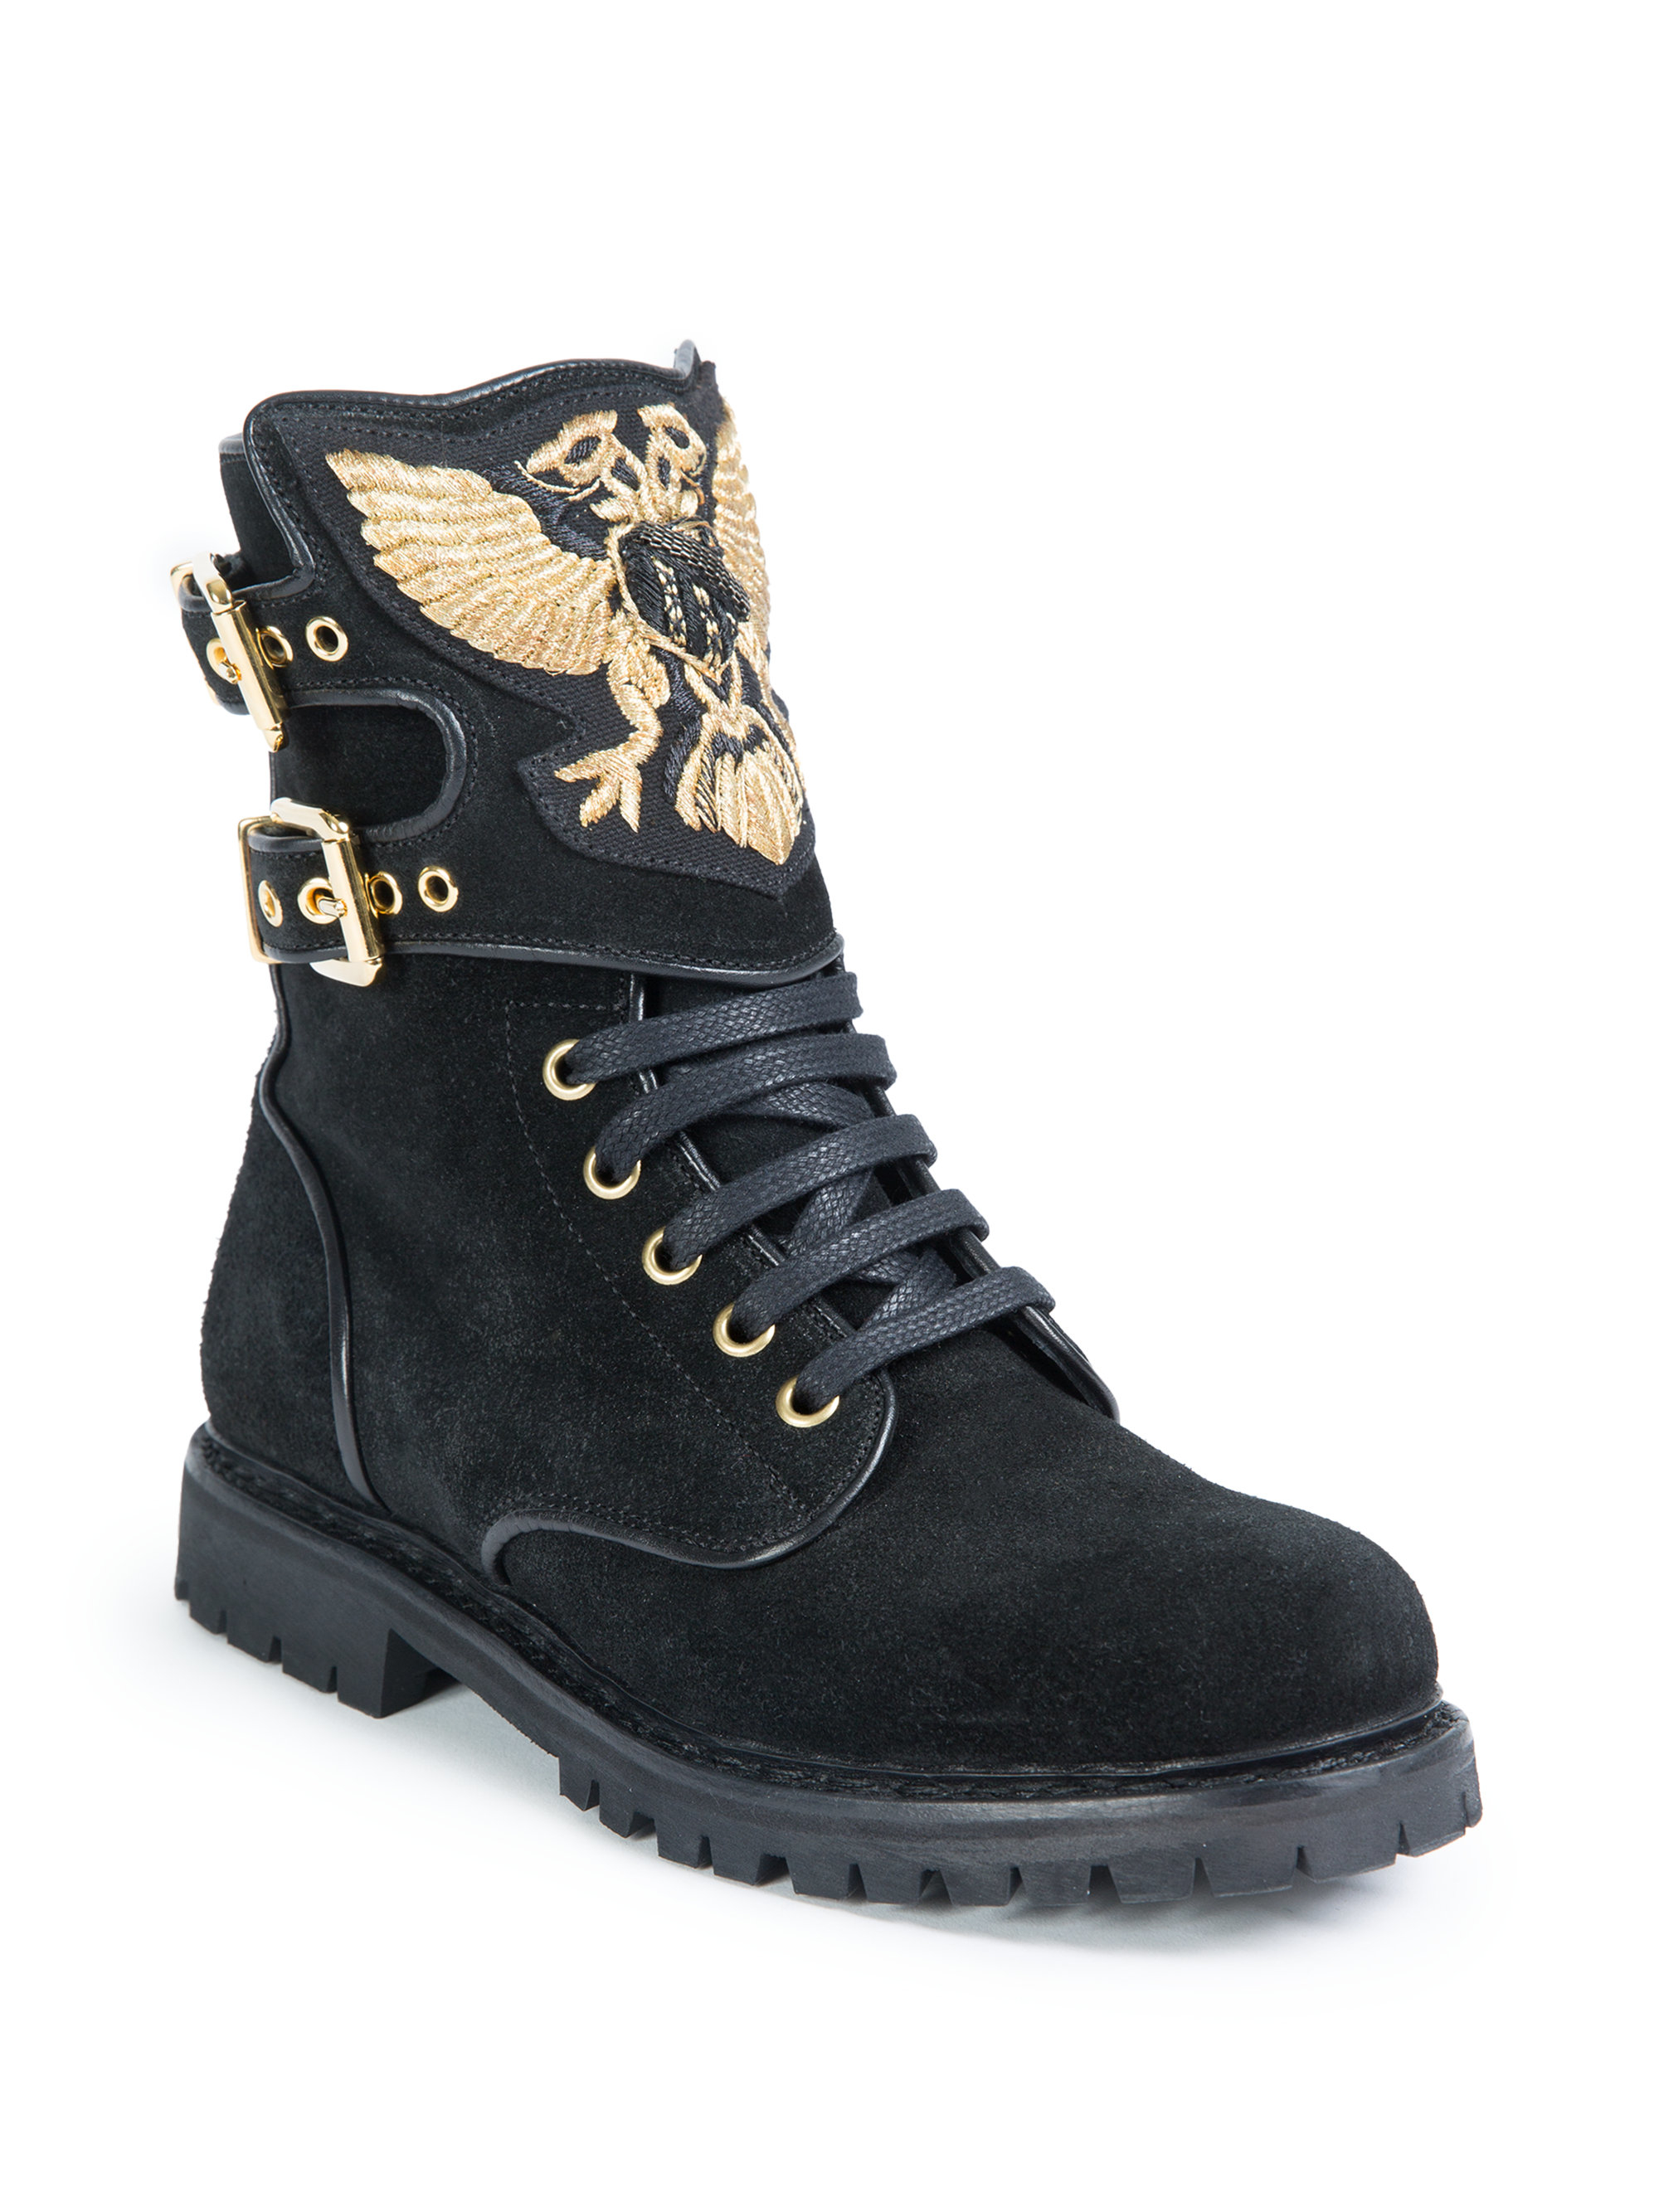 Balmain Embroidered Suede Ranger Boots In Black Lyst